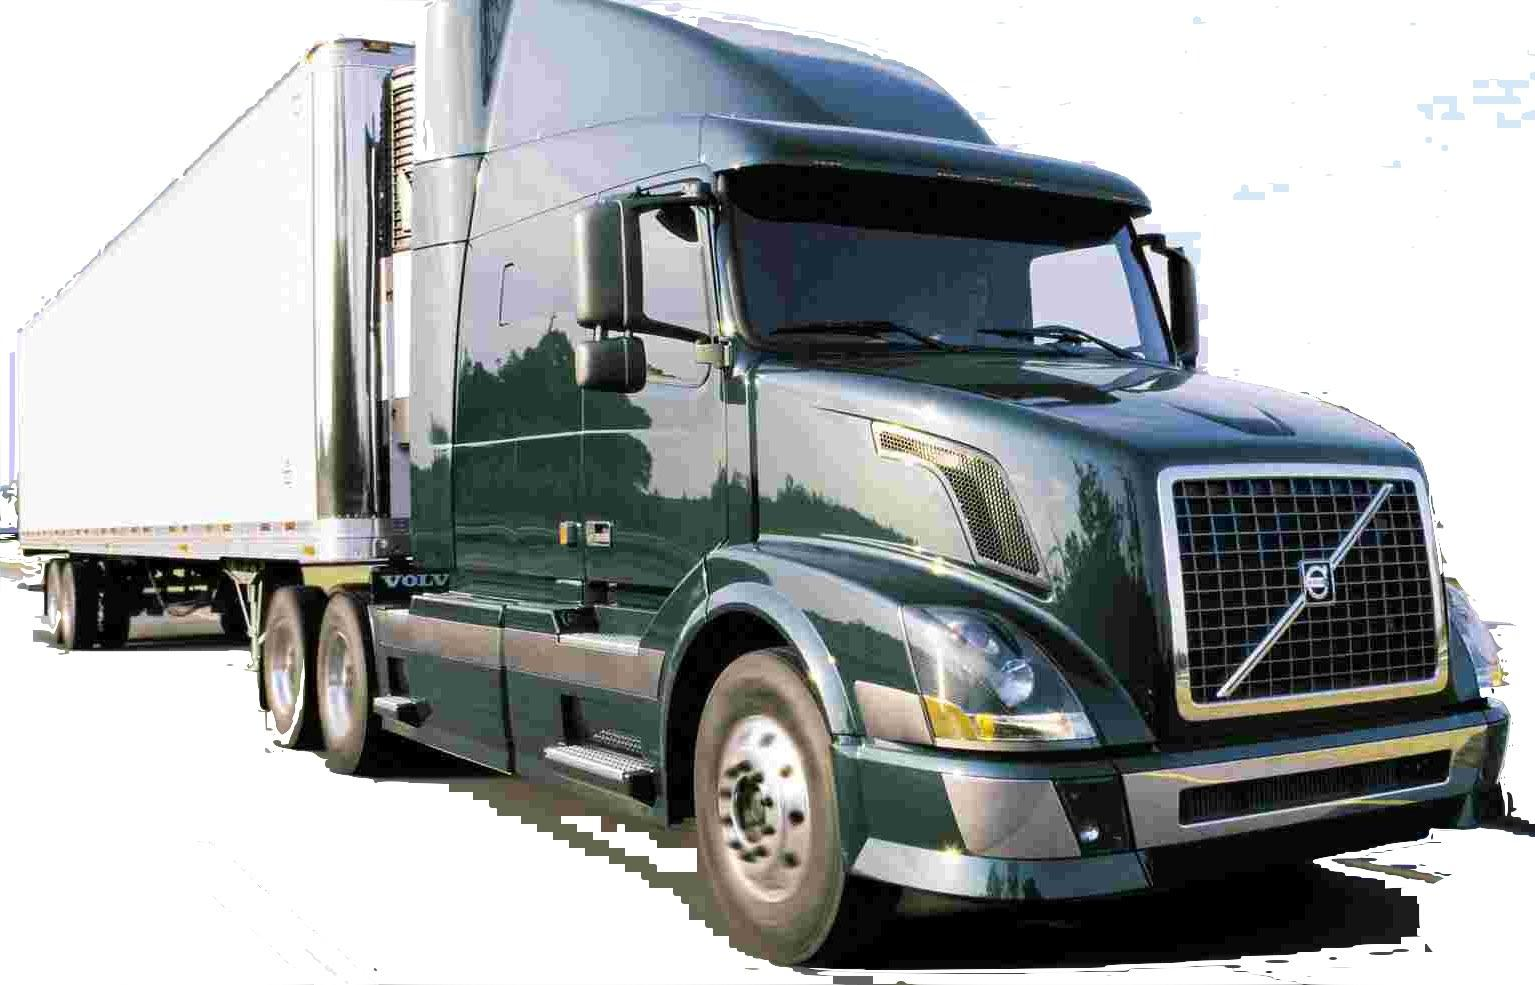 Volvo Trucks/Buses Electrical Wiring Diagram Manuals (3 GB ... on yamaha wiring schematic, ford wiring schematic, international harvester wiring schematic, kia wiring schematic, mack wiring schematic, takeuchi wiring schematic, thermo king tripac wiring schematic, gmc wiring schematic, gem car wiring schematic, john deere wiring schematic, jcb wiring schematic, prevost car wiring schematic, am general wiring schematic, new holland wiring schematic, yanmar wiring schematic, western star wiring schematic, vw bug wiring schematic, saturn wiring schematic, hyundai wiring schematic, vespa wiring schematic,